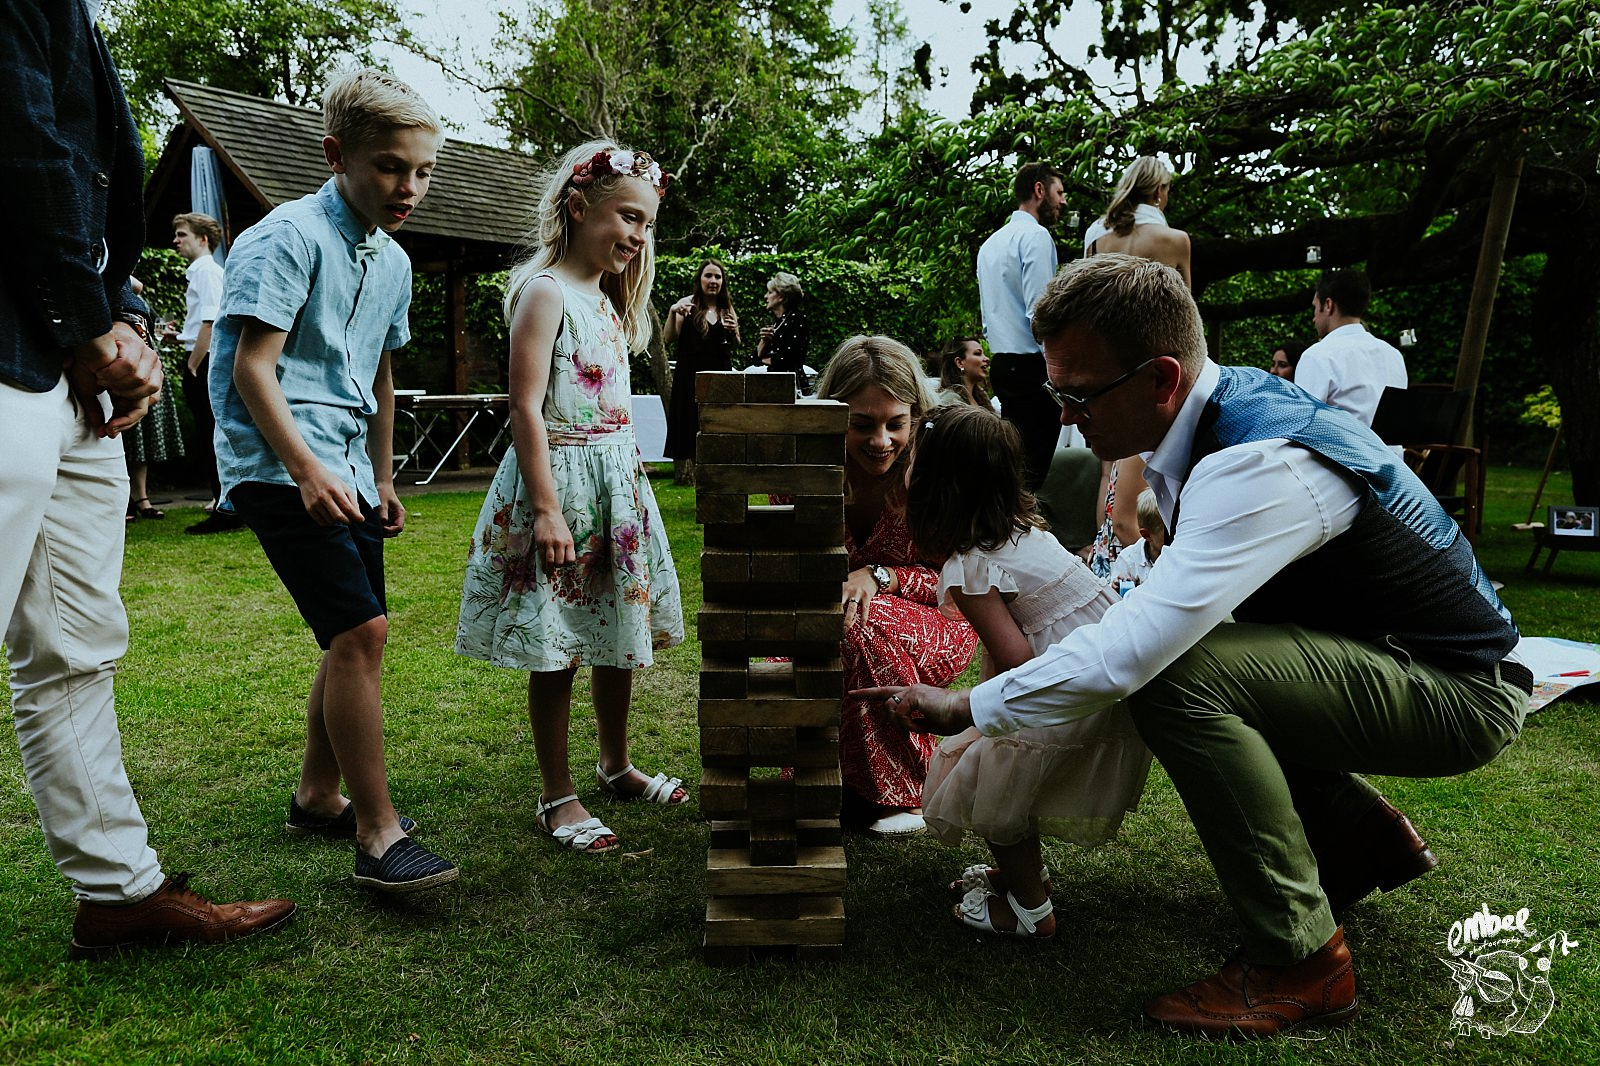 people play with giant jenga